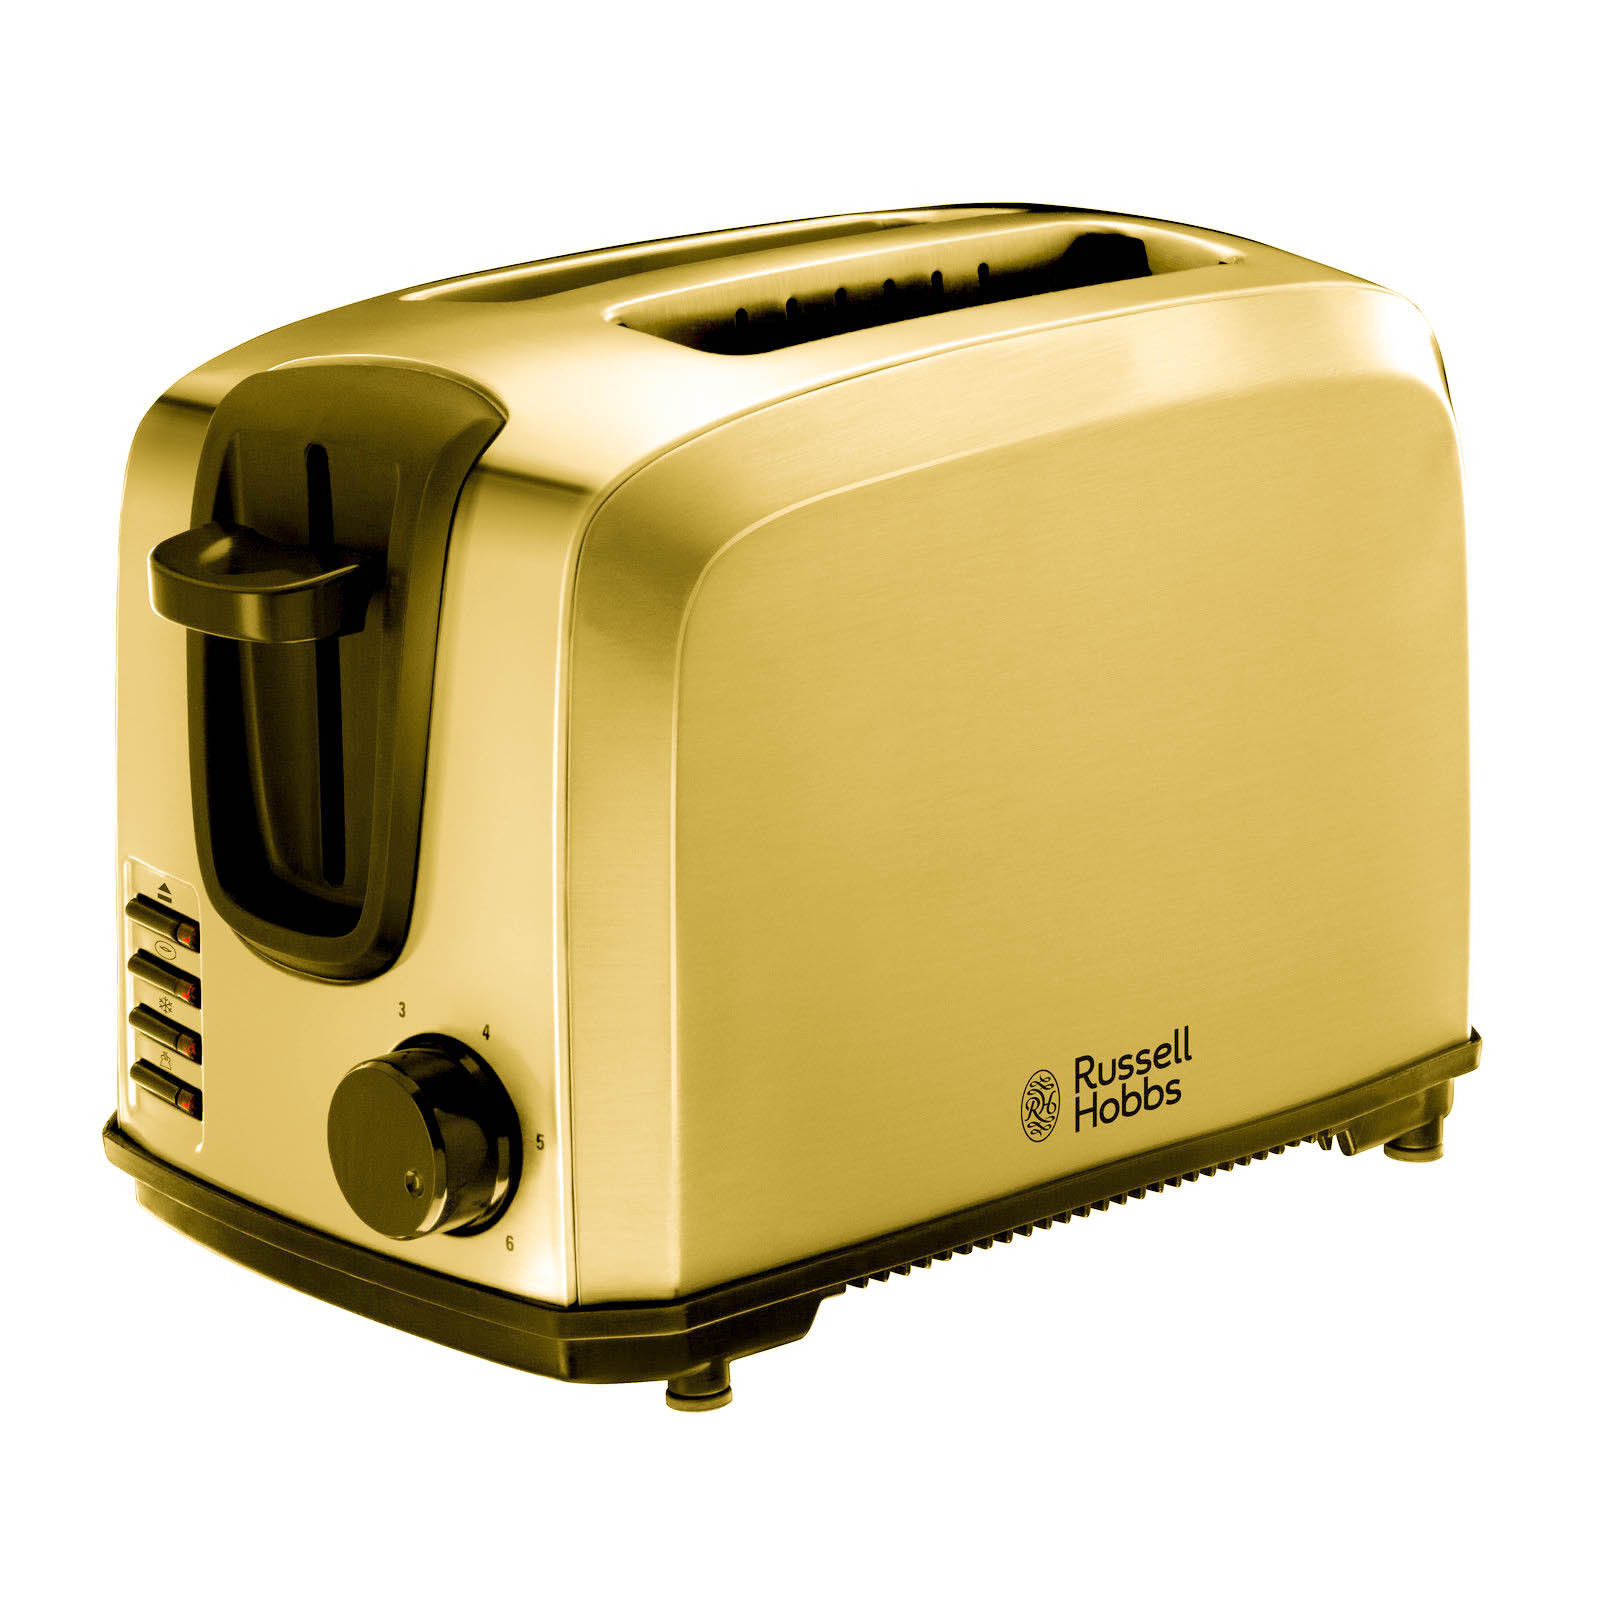 LUXURY 24K or Plated Russel Hobbs Compact 2 Slice Toaster - 20880